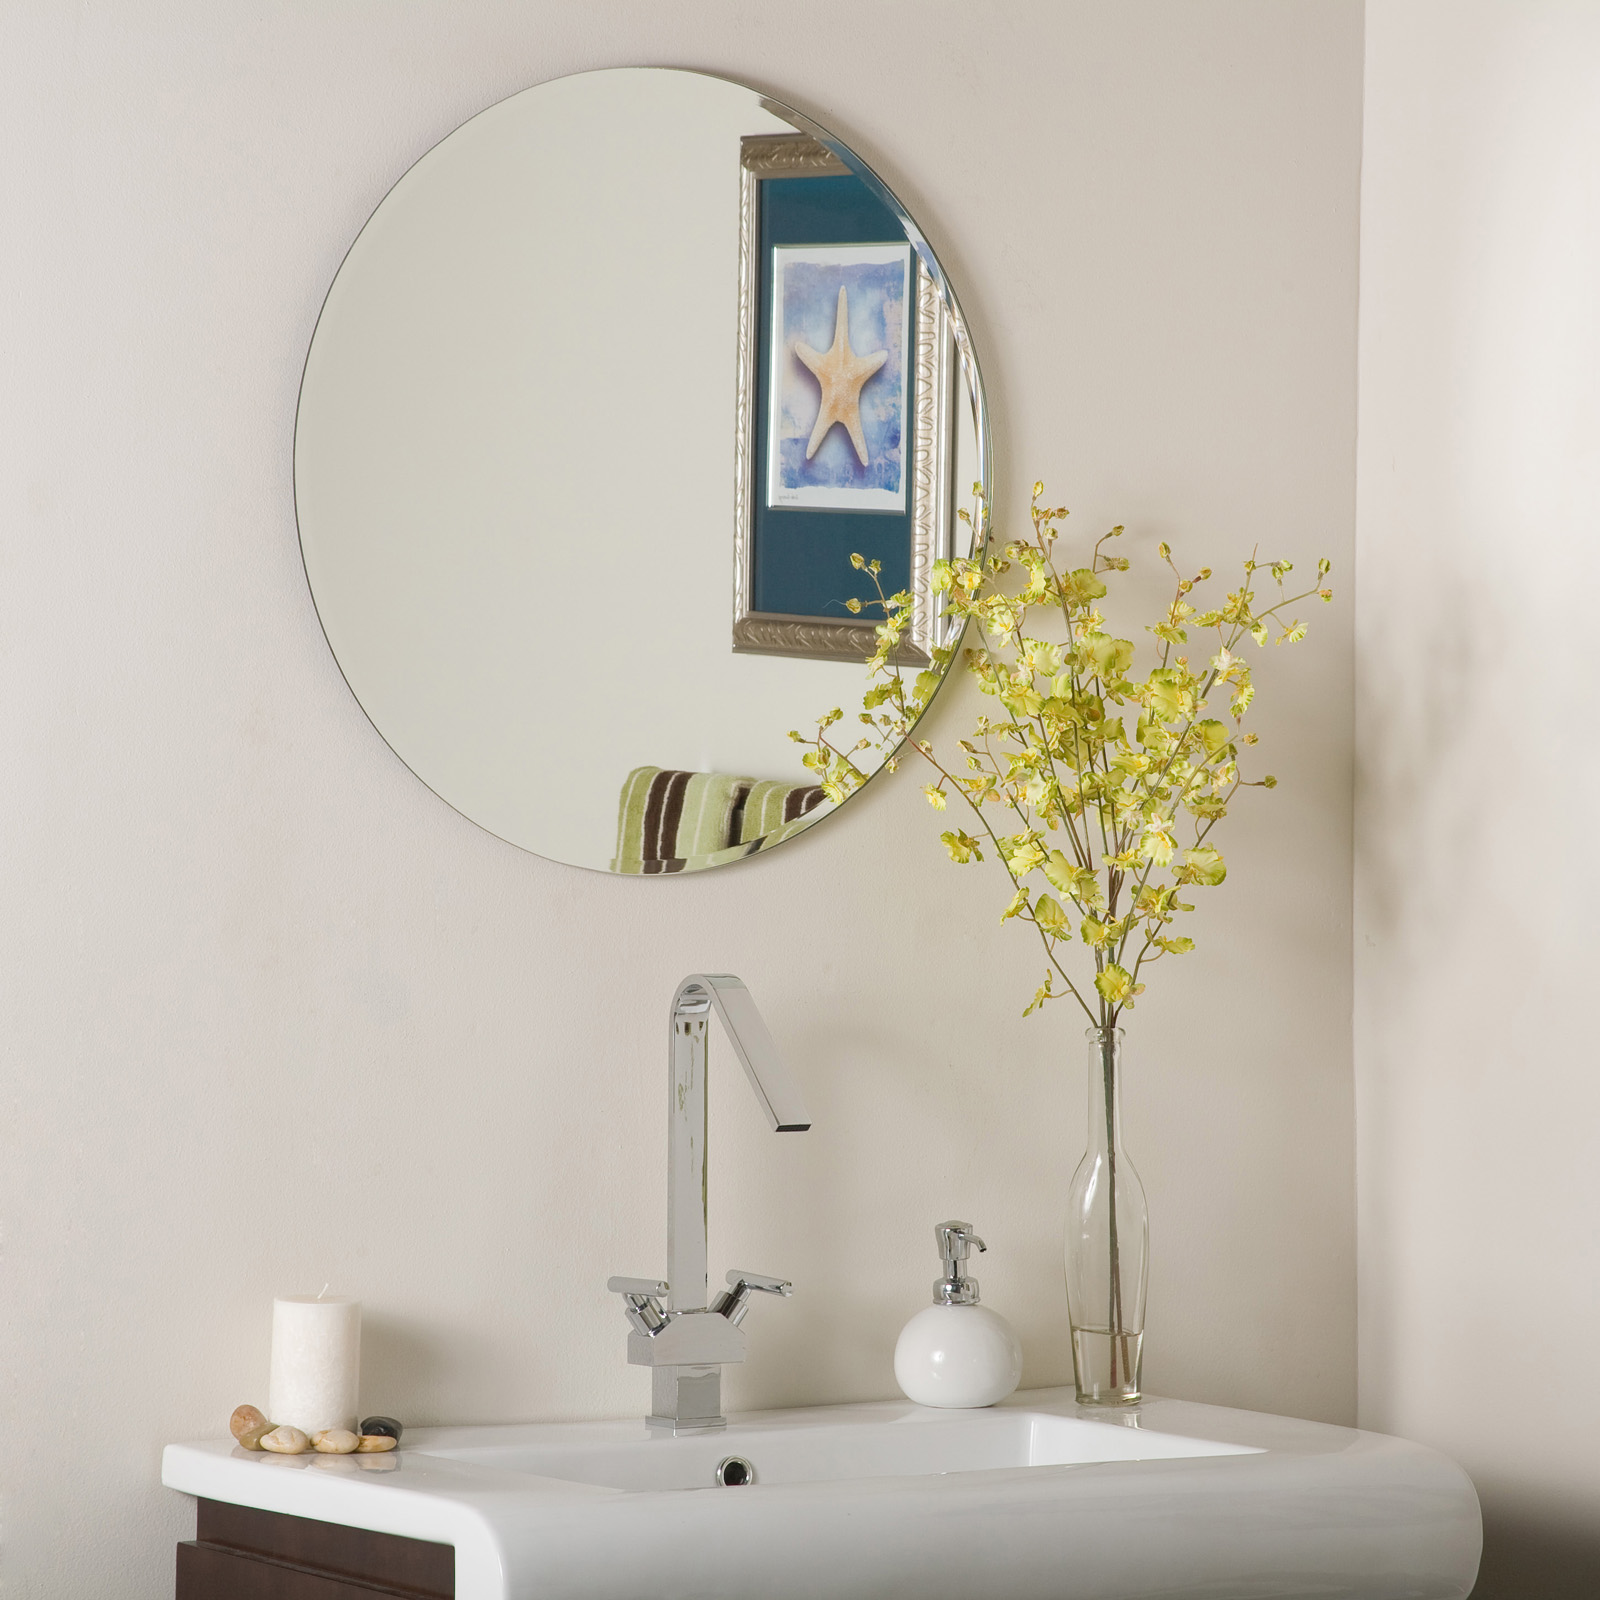 Beveled Bathroom Vanity Mirrors. Bathroom Frameless, Frameless Round Beveled  Mirror Vanity Mirrors R